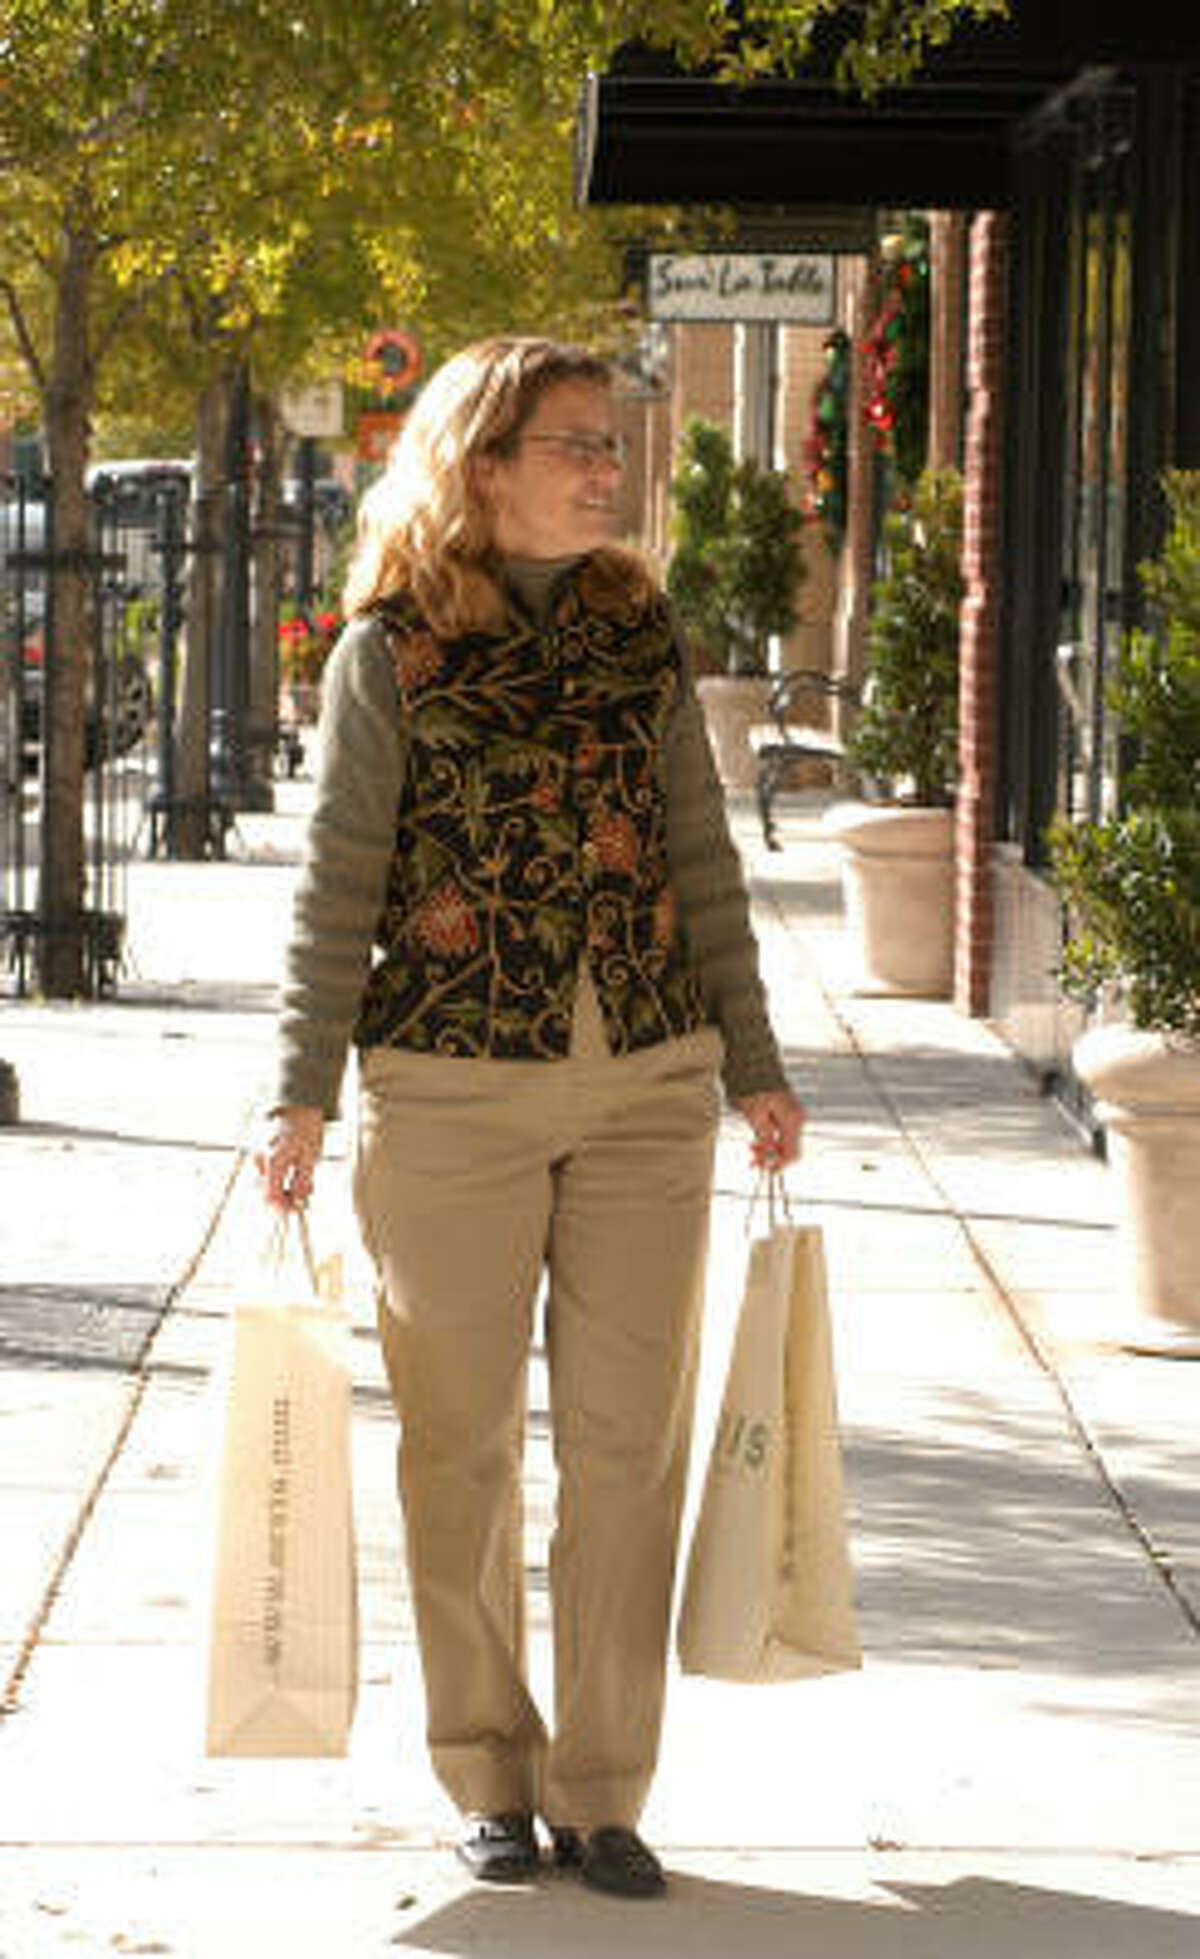 Glenda Cammarata of The Woodlands carrys her shopping bags during a trip to Market Street. The retail and entertaimnent center in The Woodlands is gearing up for the holiday season.